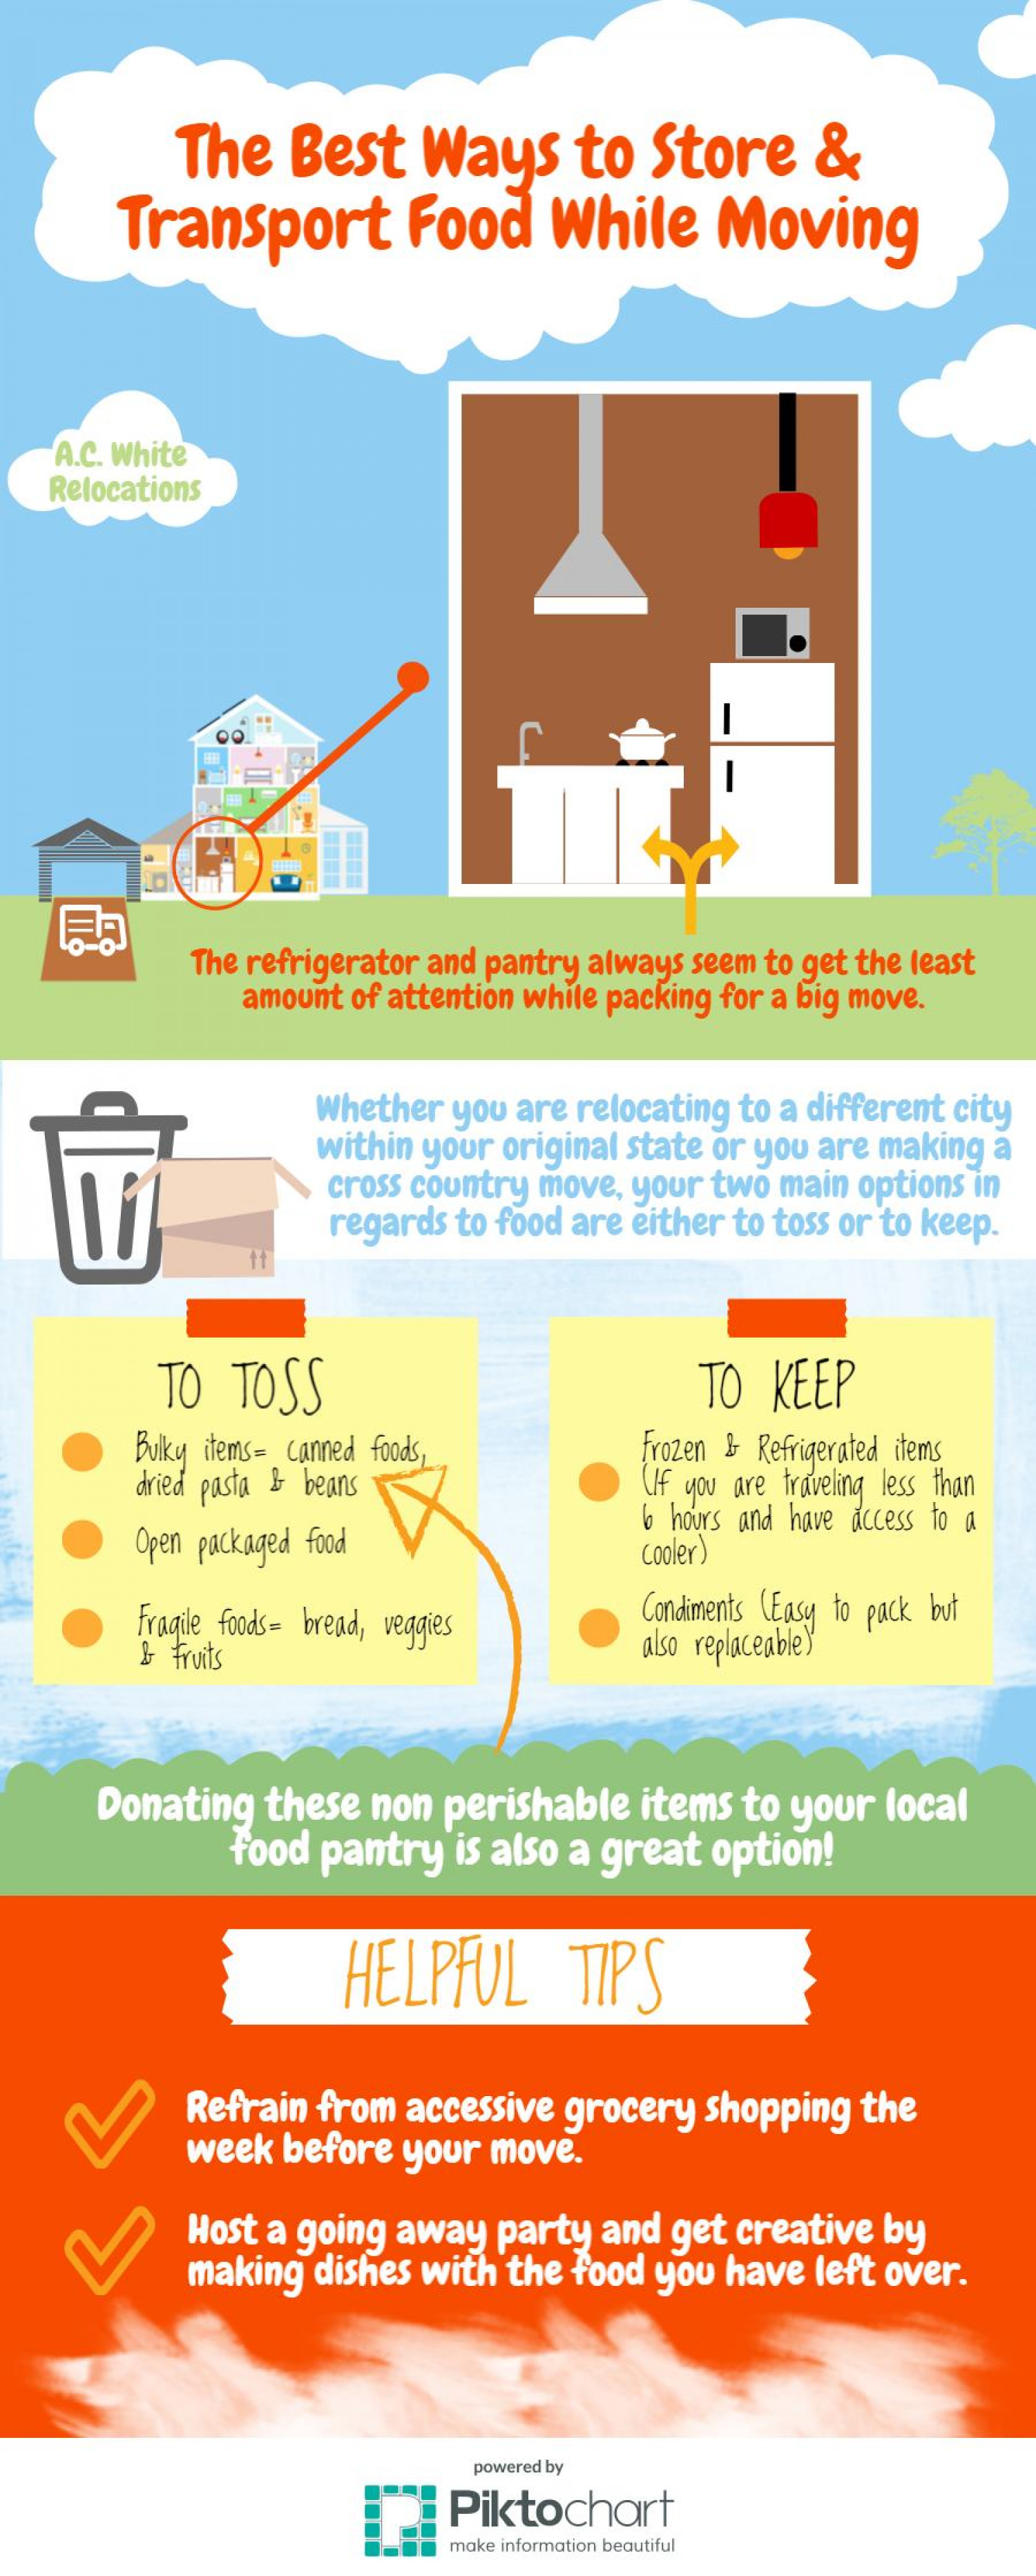 Best Ways to Store and Transport Food While Moving  Infographic